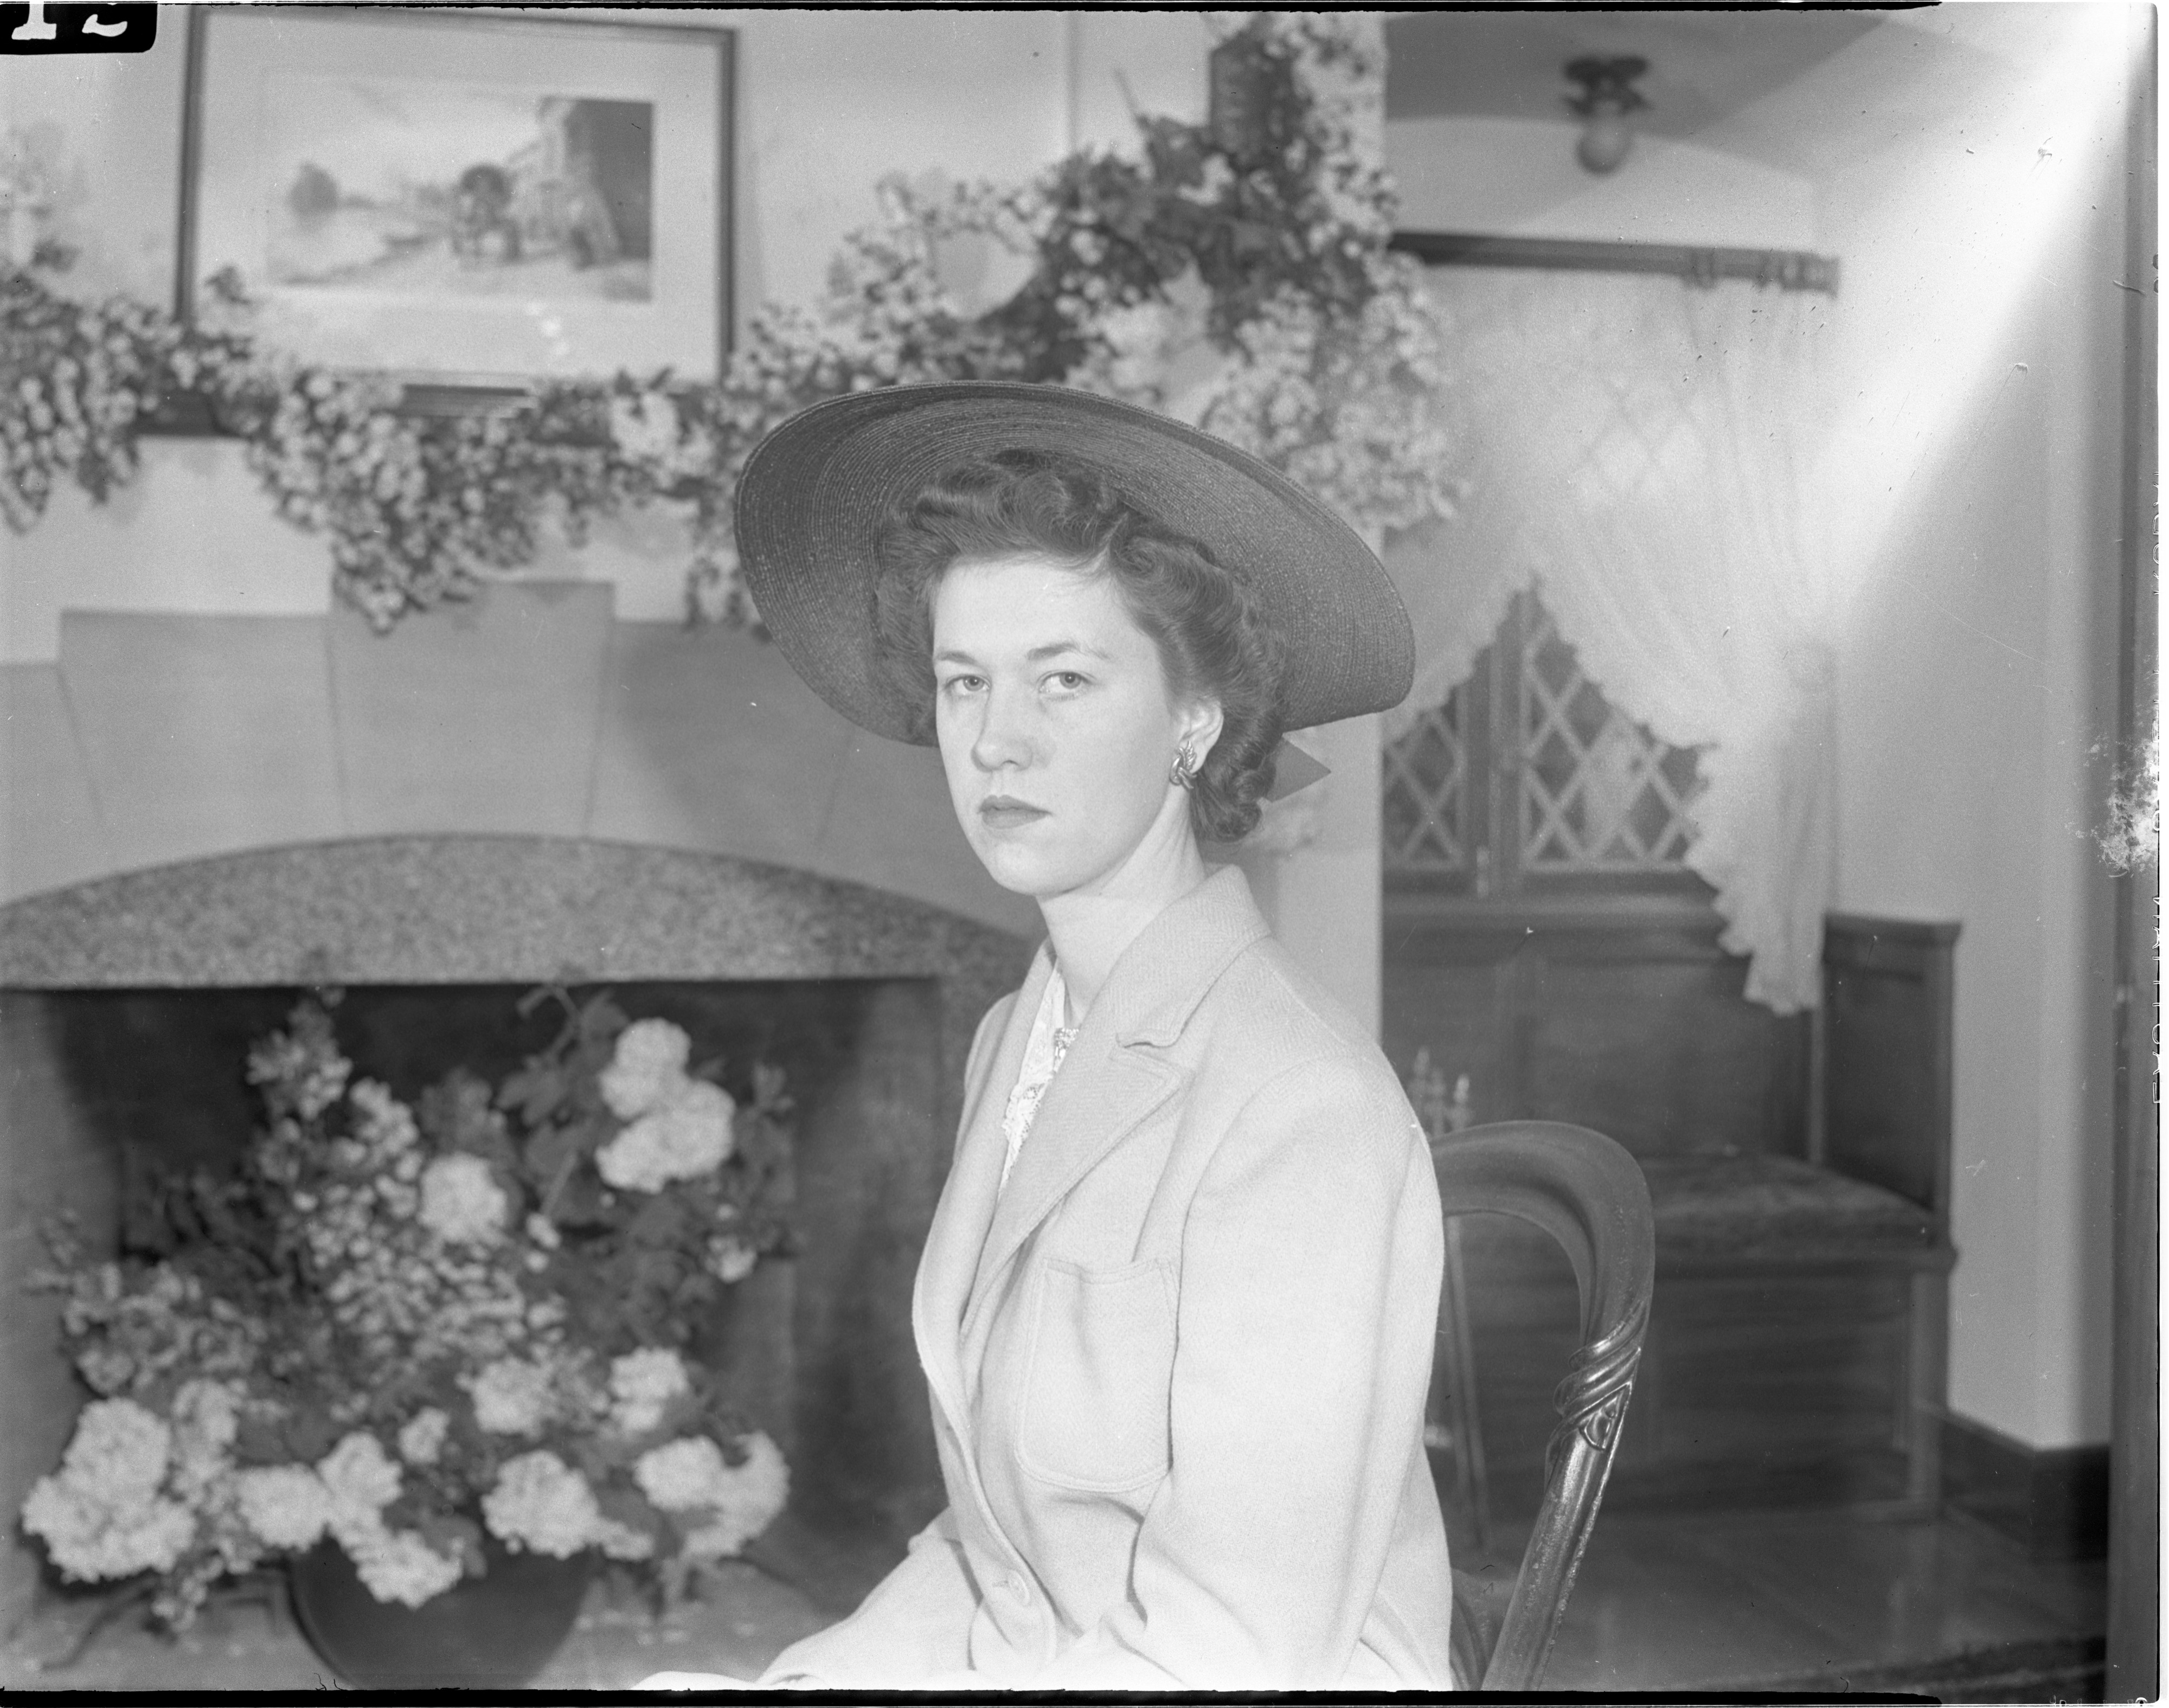 Dorothy Dale On Her Wedding Day - May 27, 1942 image